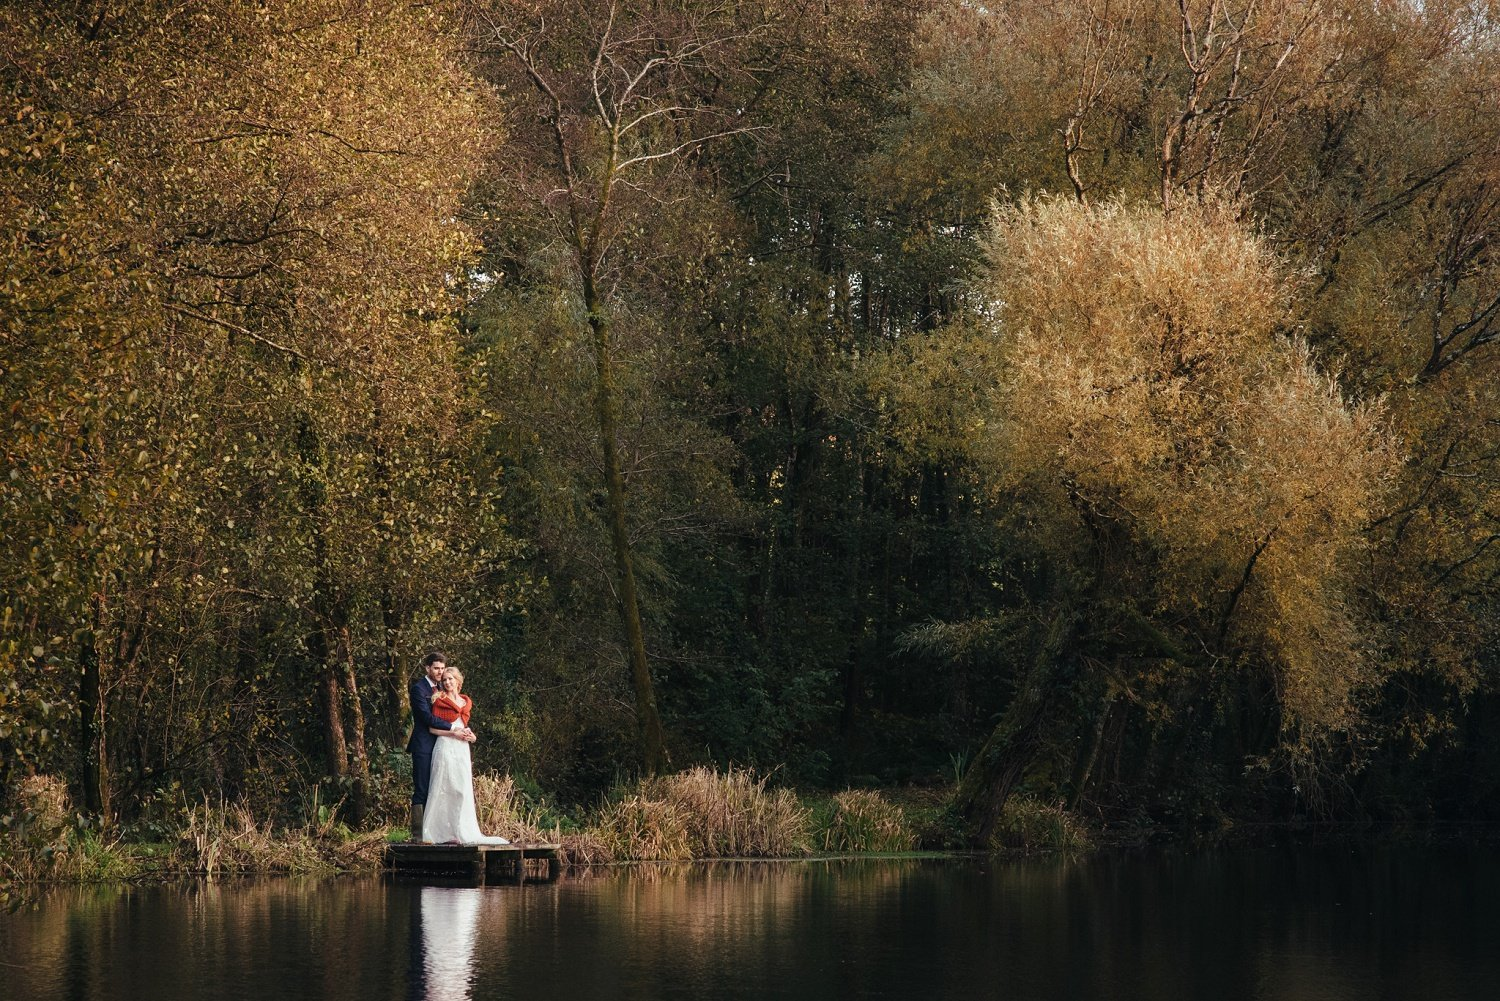 Bride and groom autumnal photo by the lake at Tree Top Escape, Devon